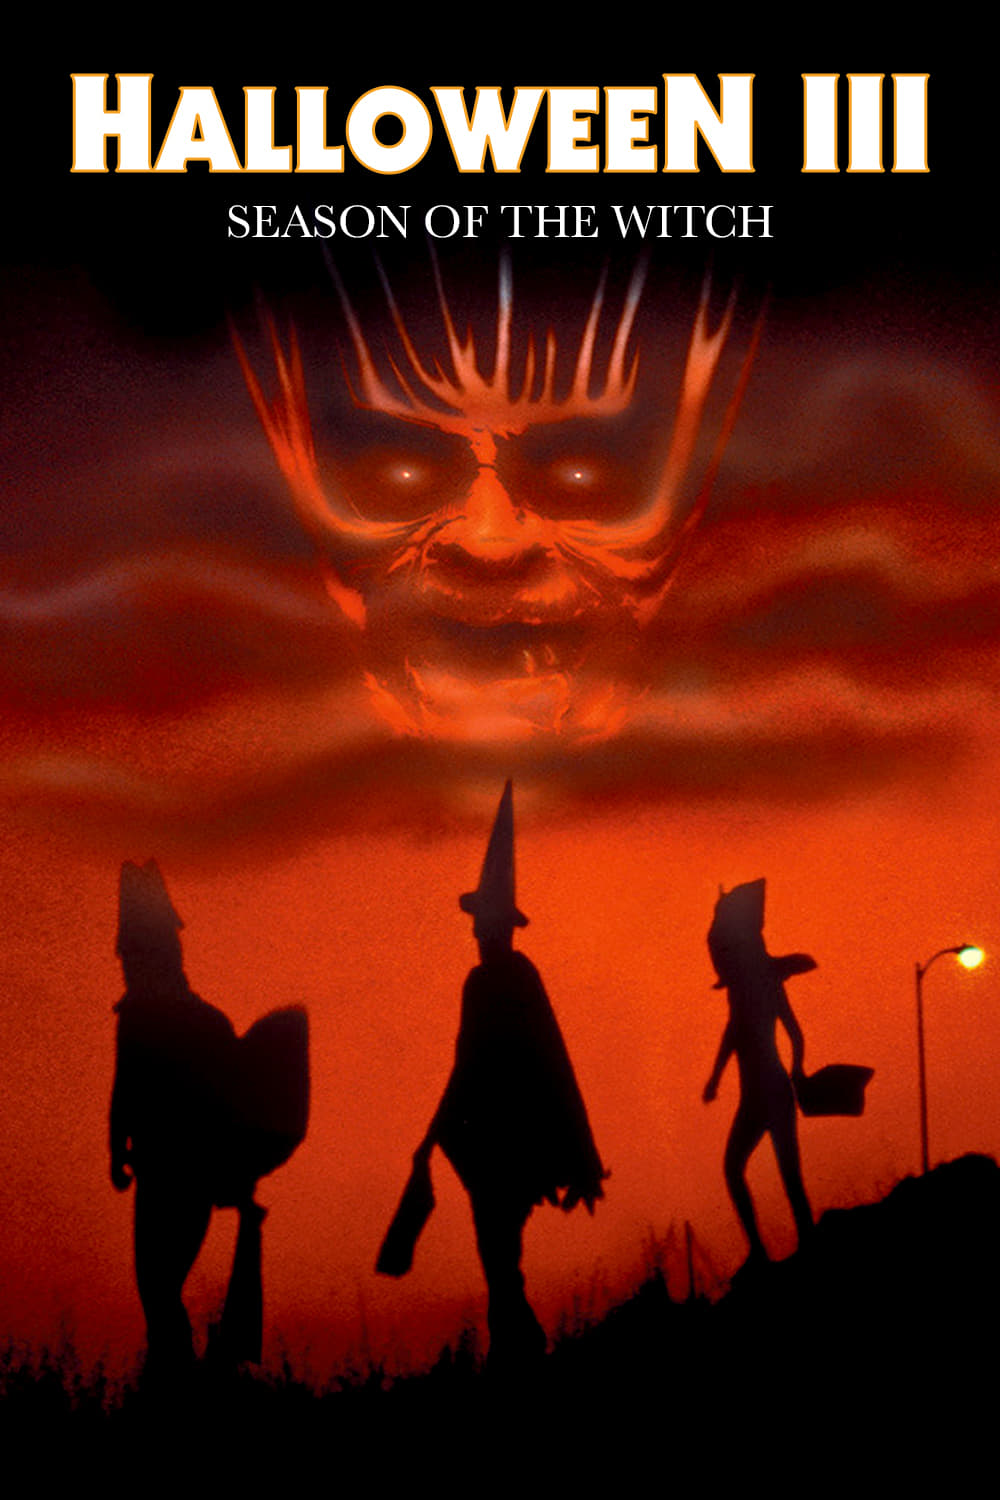 Halloween III:of the Witch